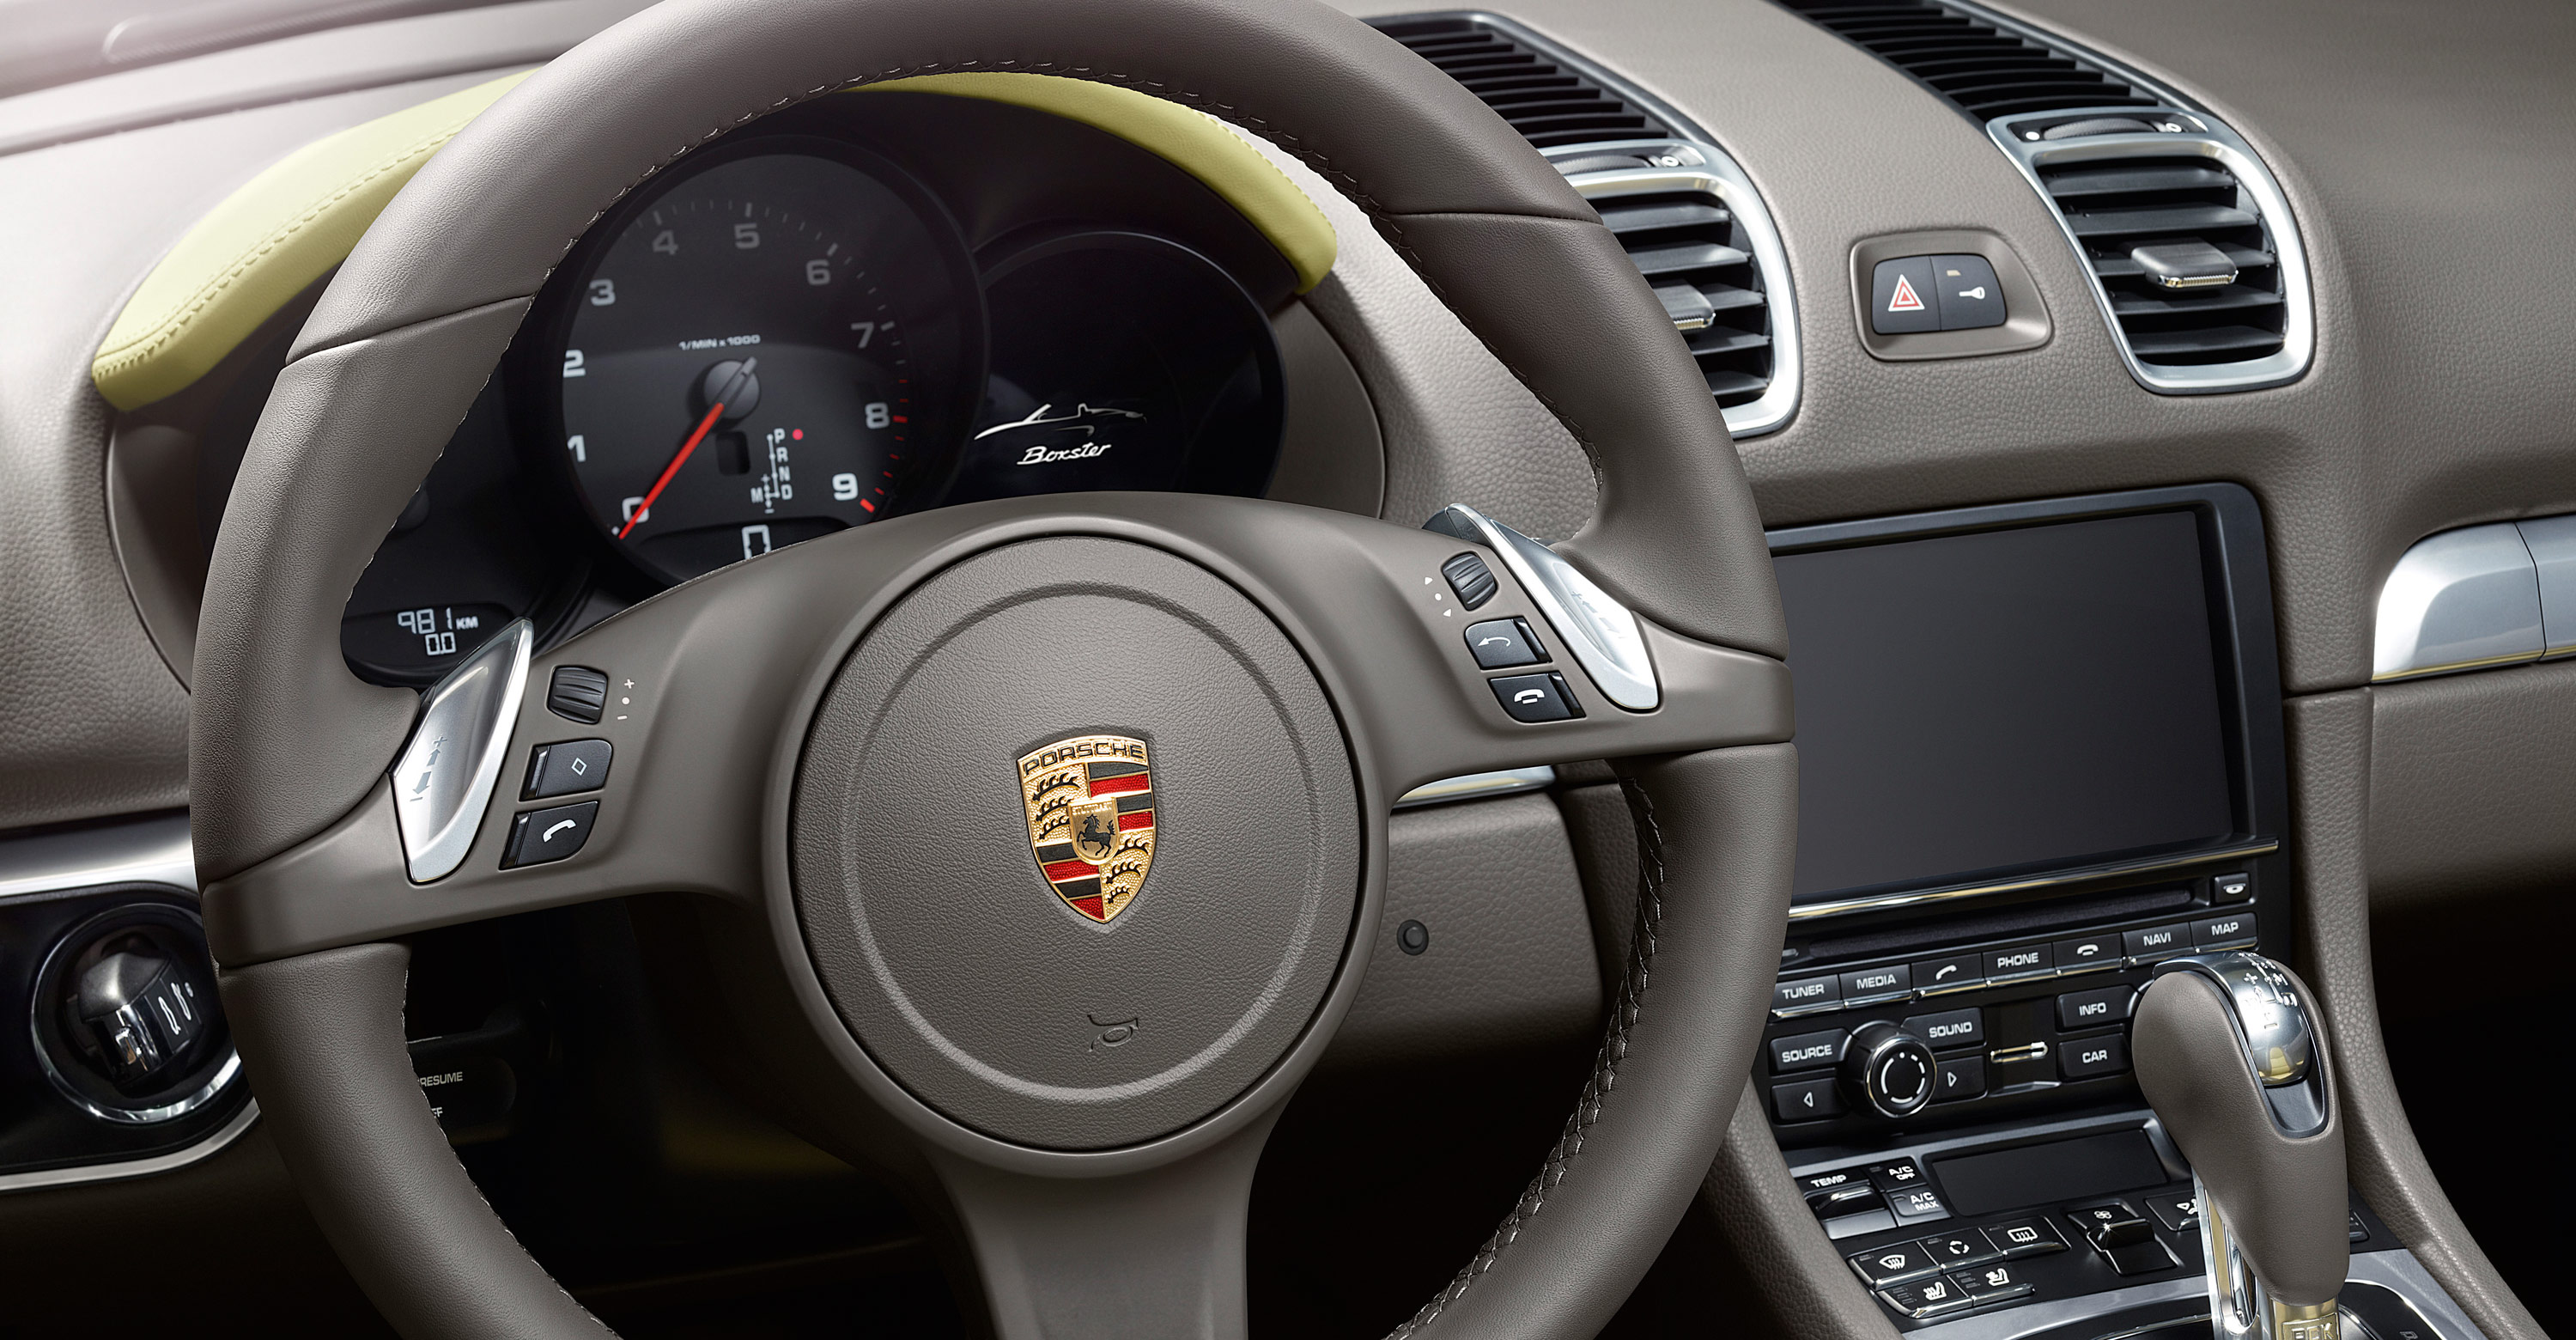 2012 Porsche Boxster - Interior, Steering wheel